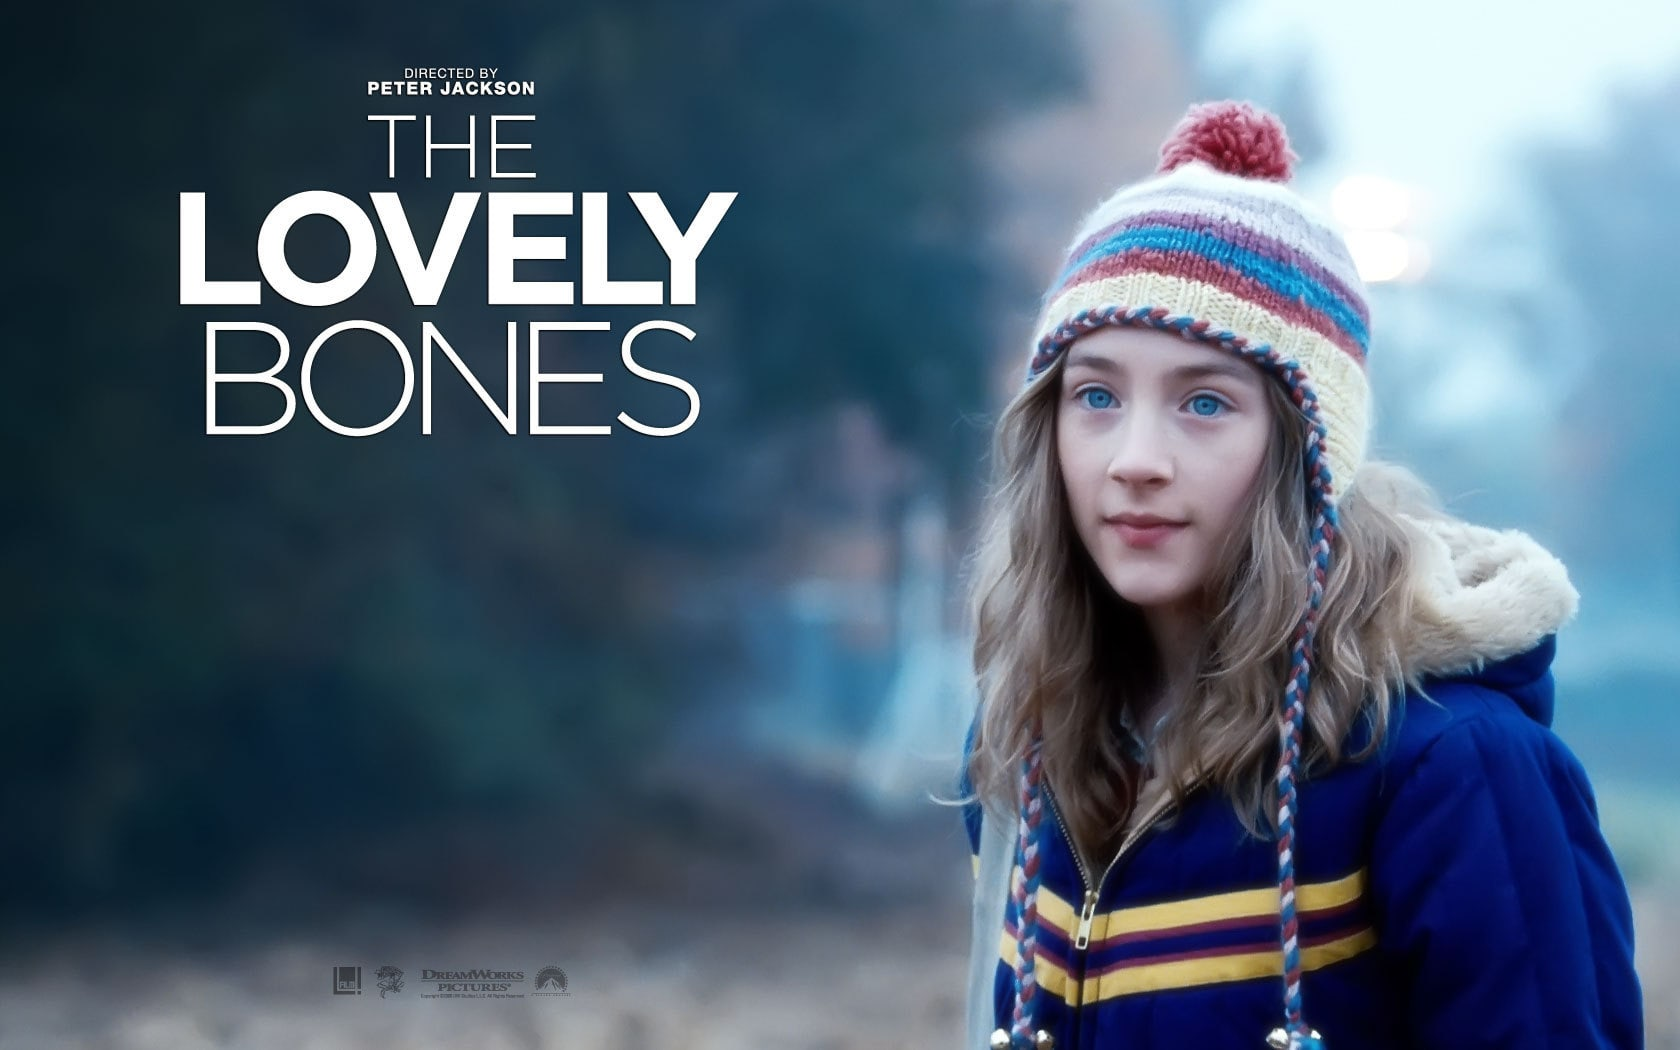 The Lovely Bones HQ wallpapers